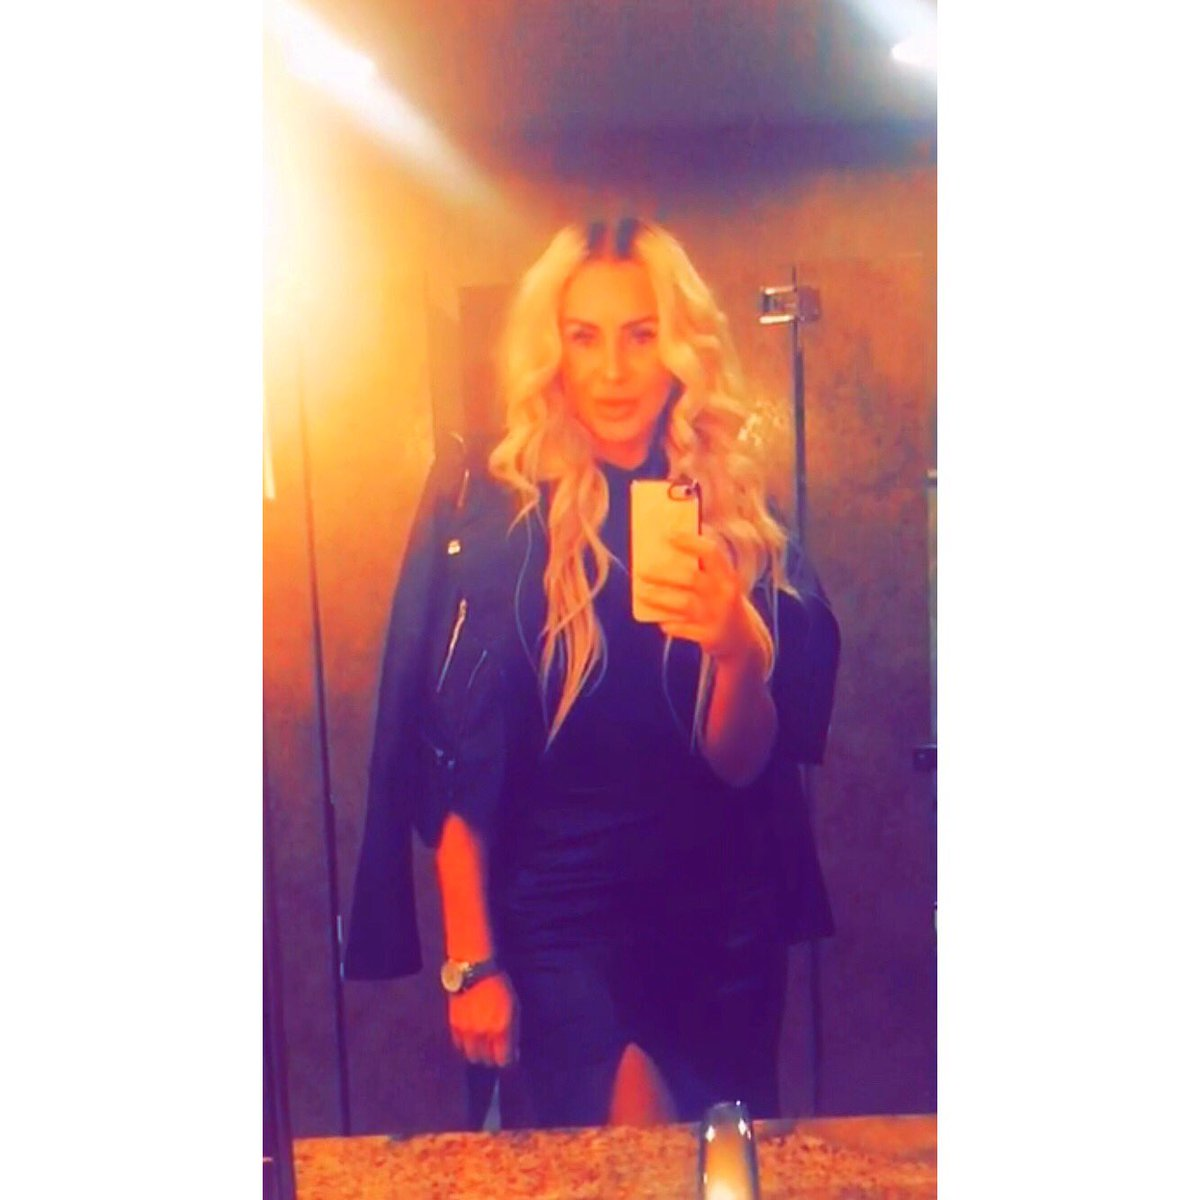 Is it Friday yet? #bathroomselfie 🙈